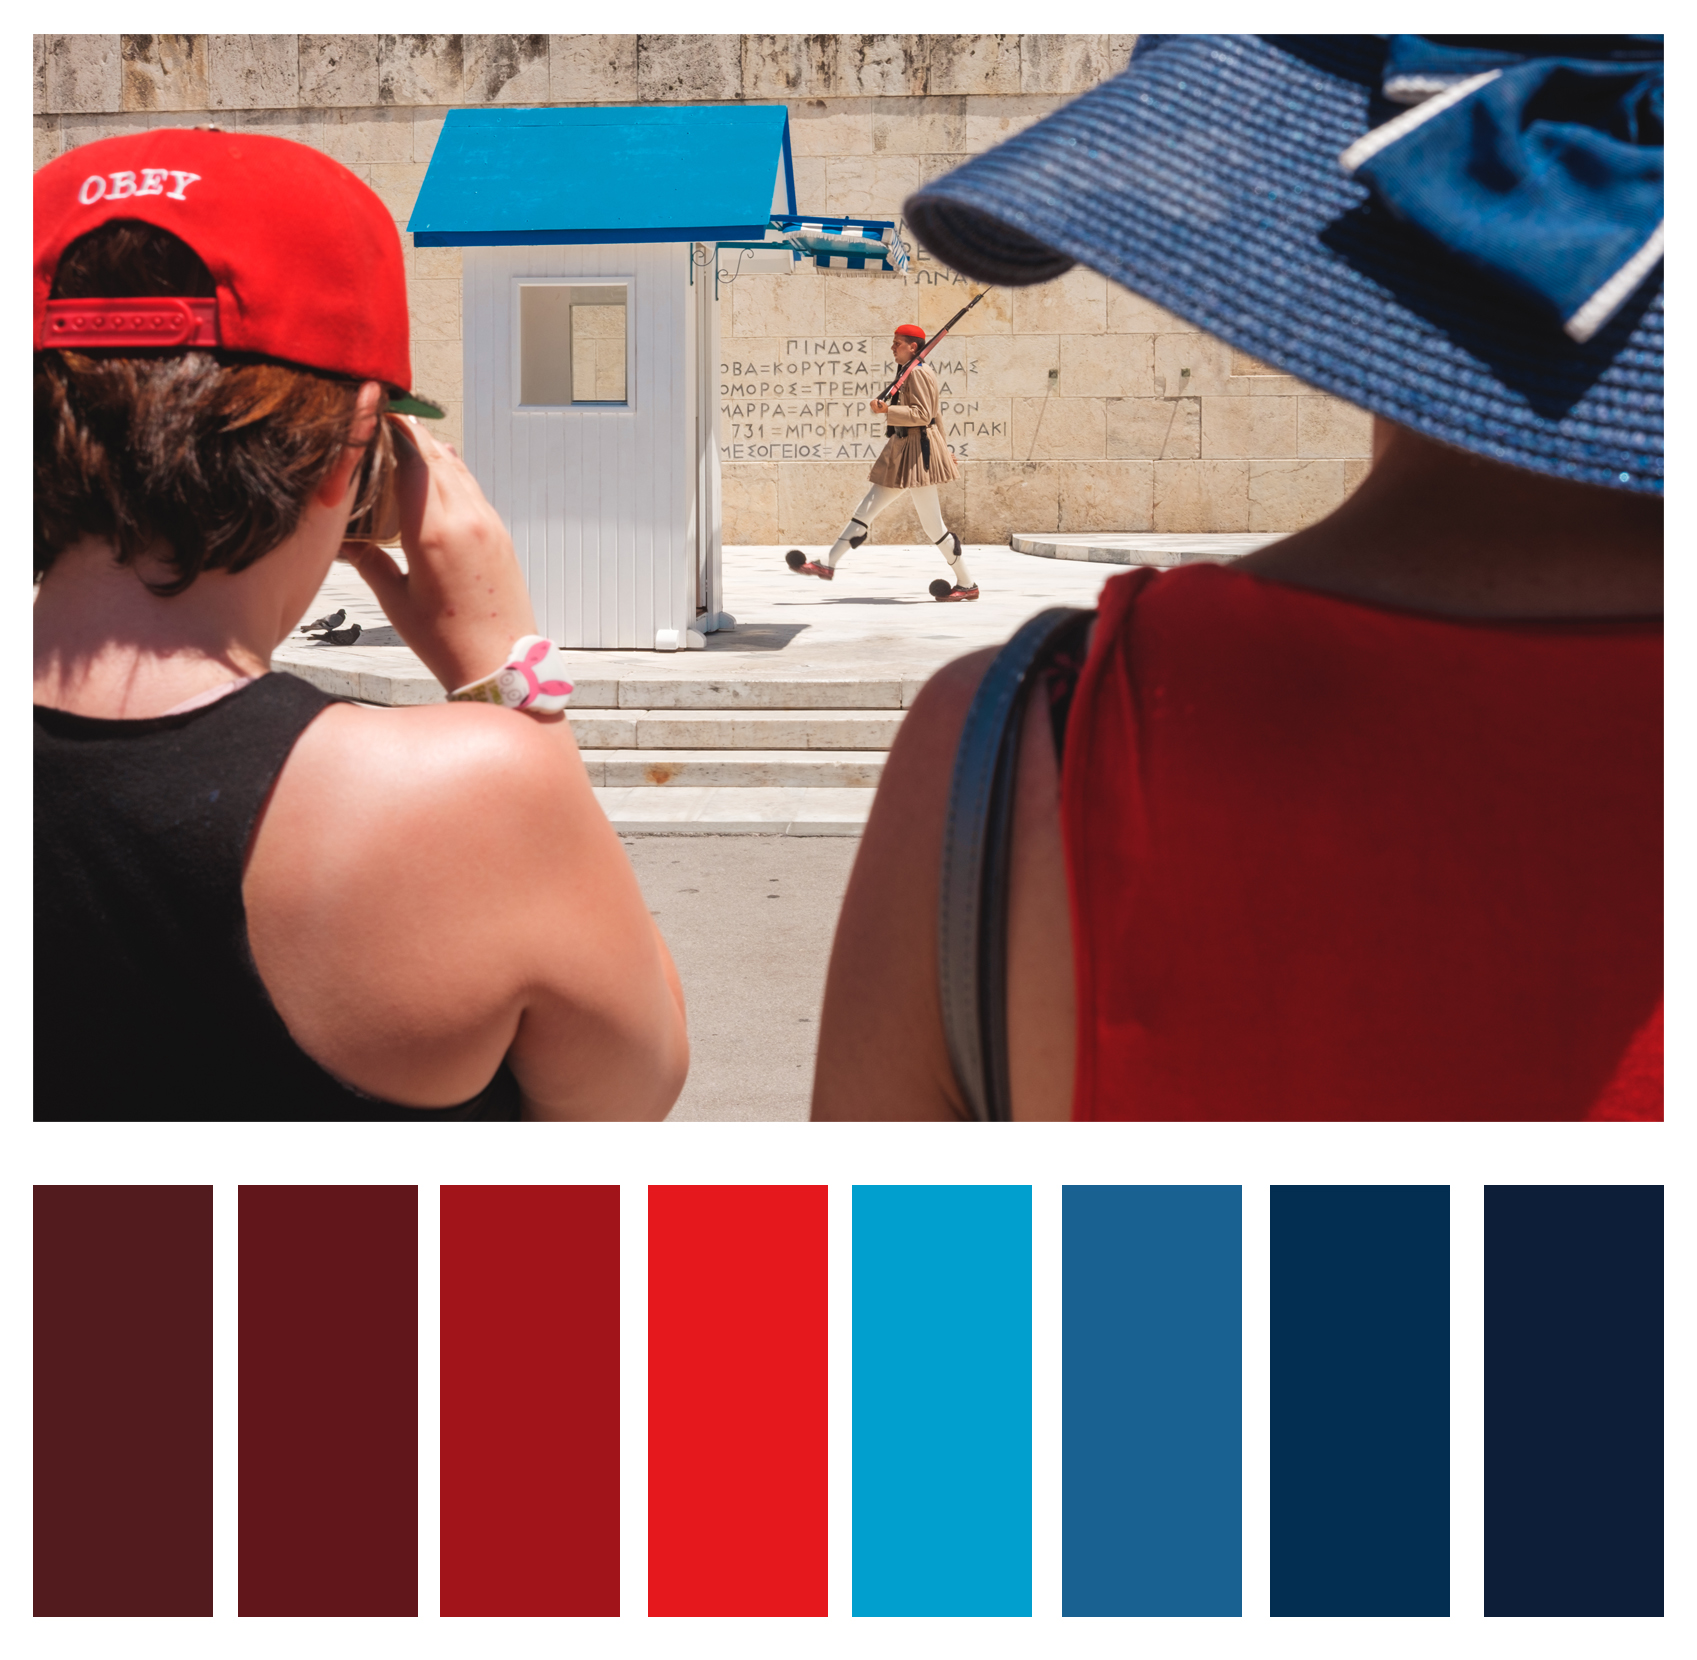 Figure 1a: Note the primary colors do not distract the eye from the subject. By using strong primary reds and blues, the subject is clear to the viewer.